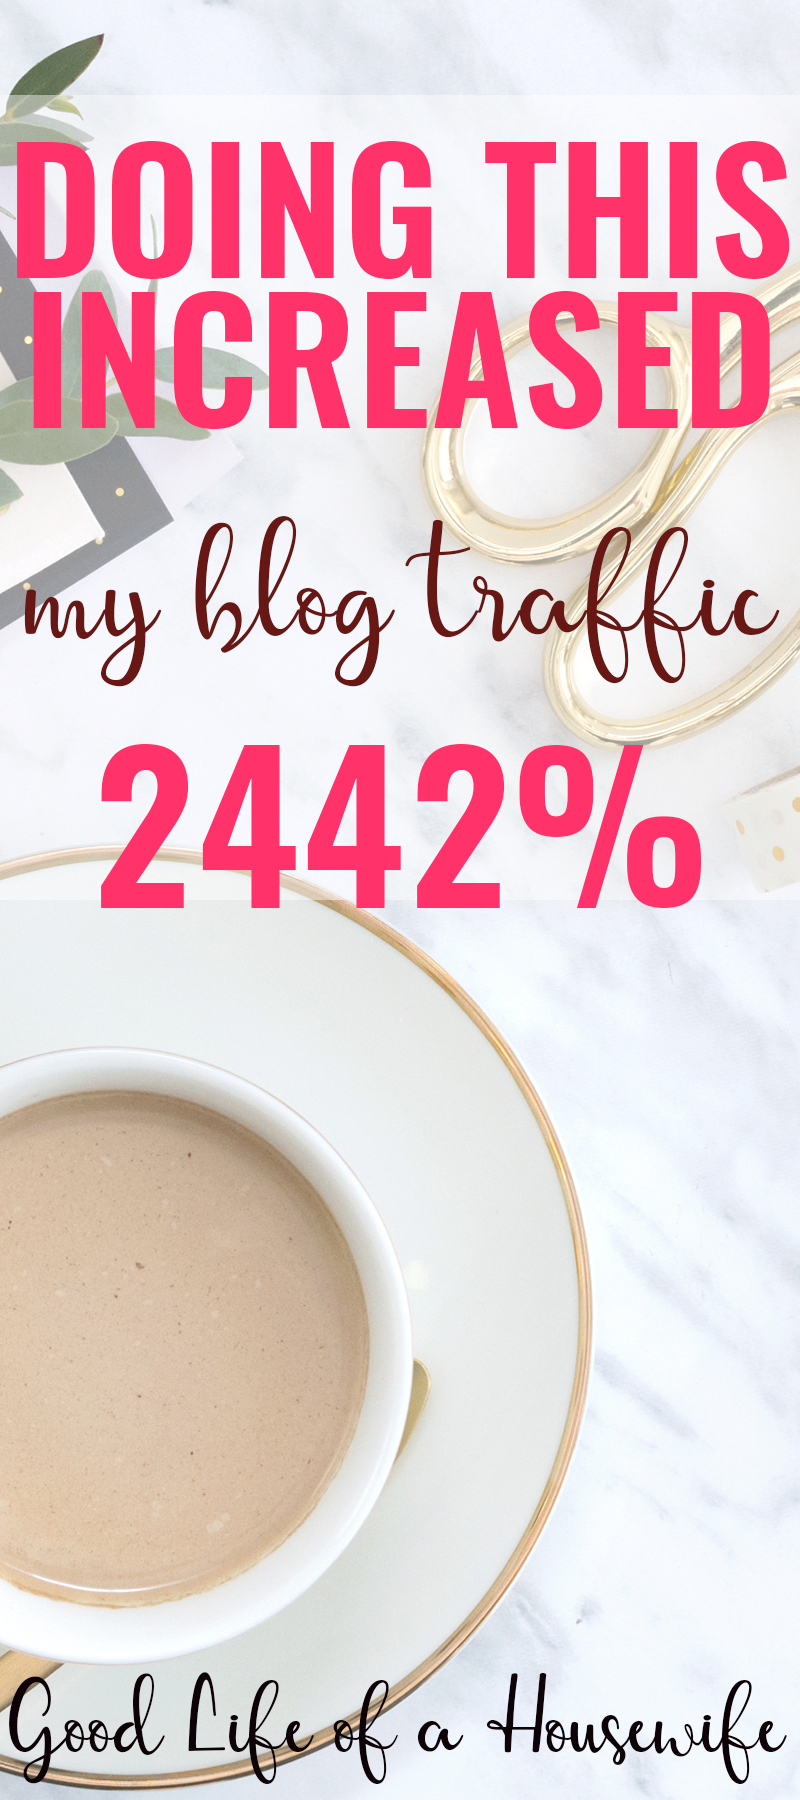 Doing this increased my blog traffic by 2442%. Taking a few steps helped me to grow my blog traffic in just five months.